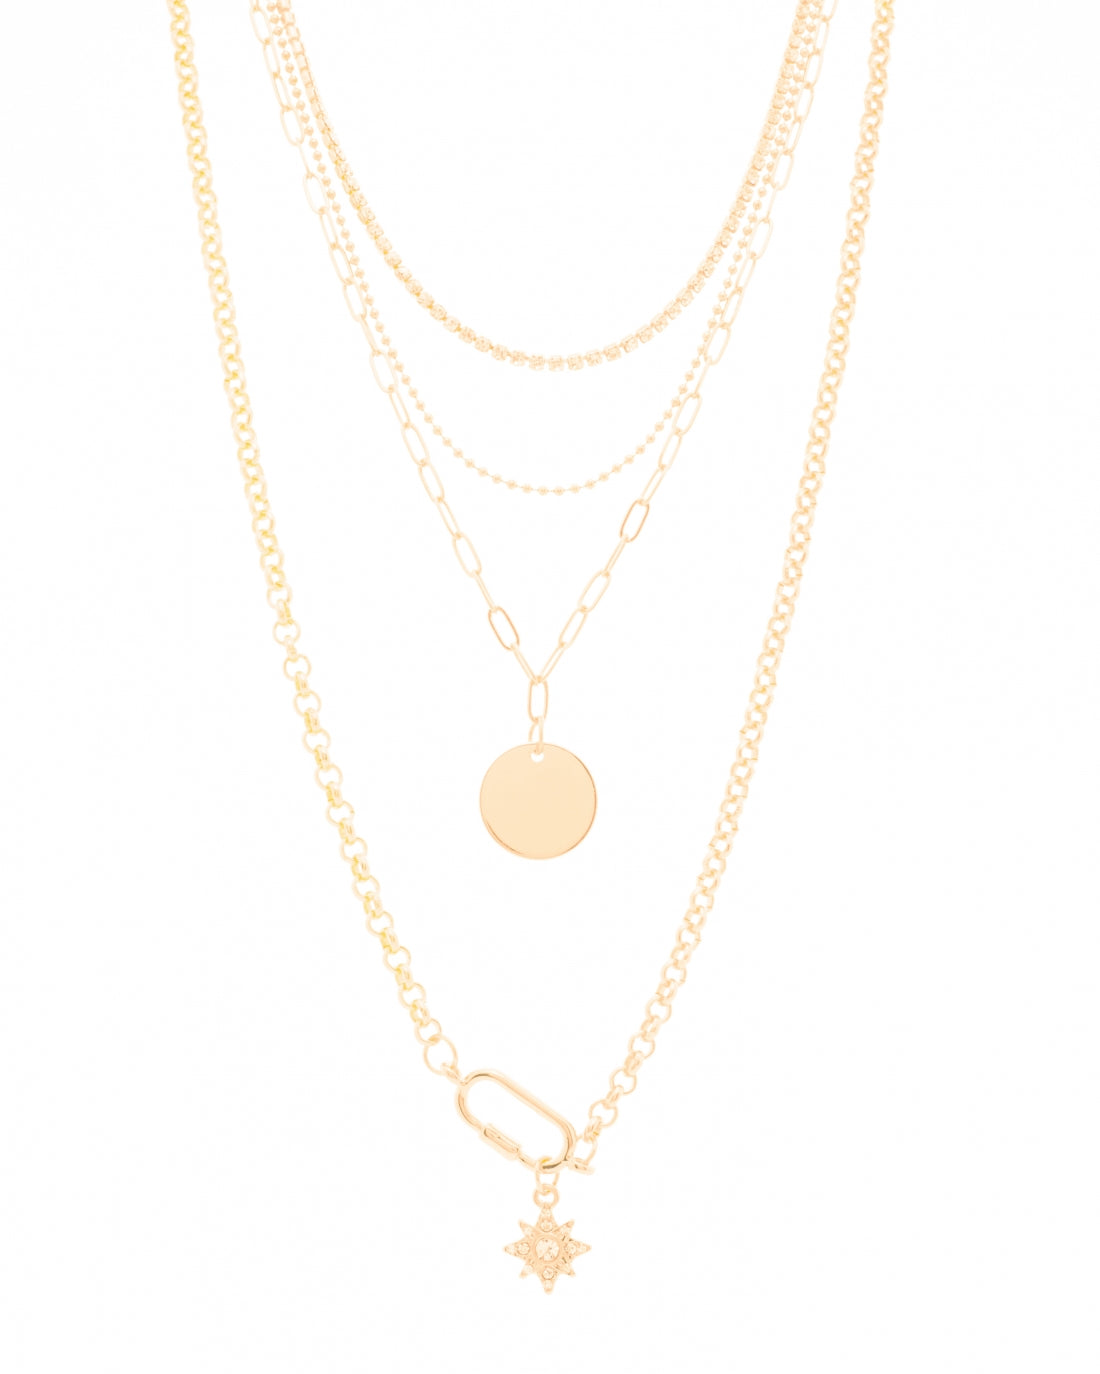 HARLOW JEAN NECKLACE